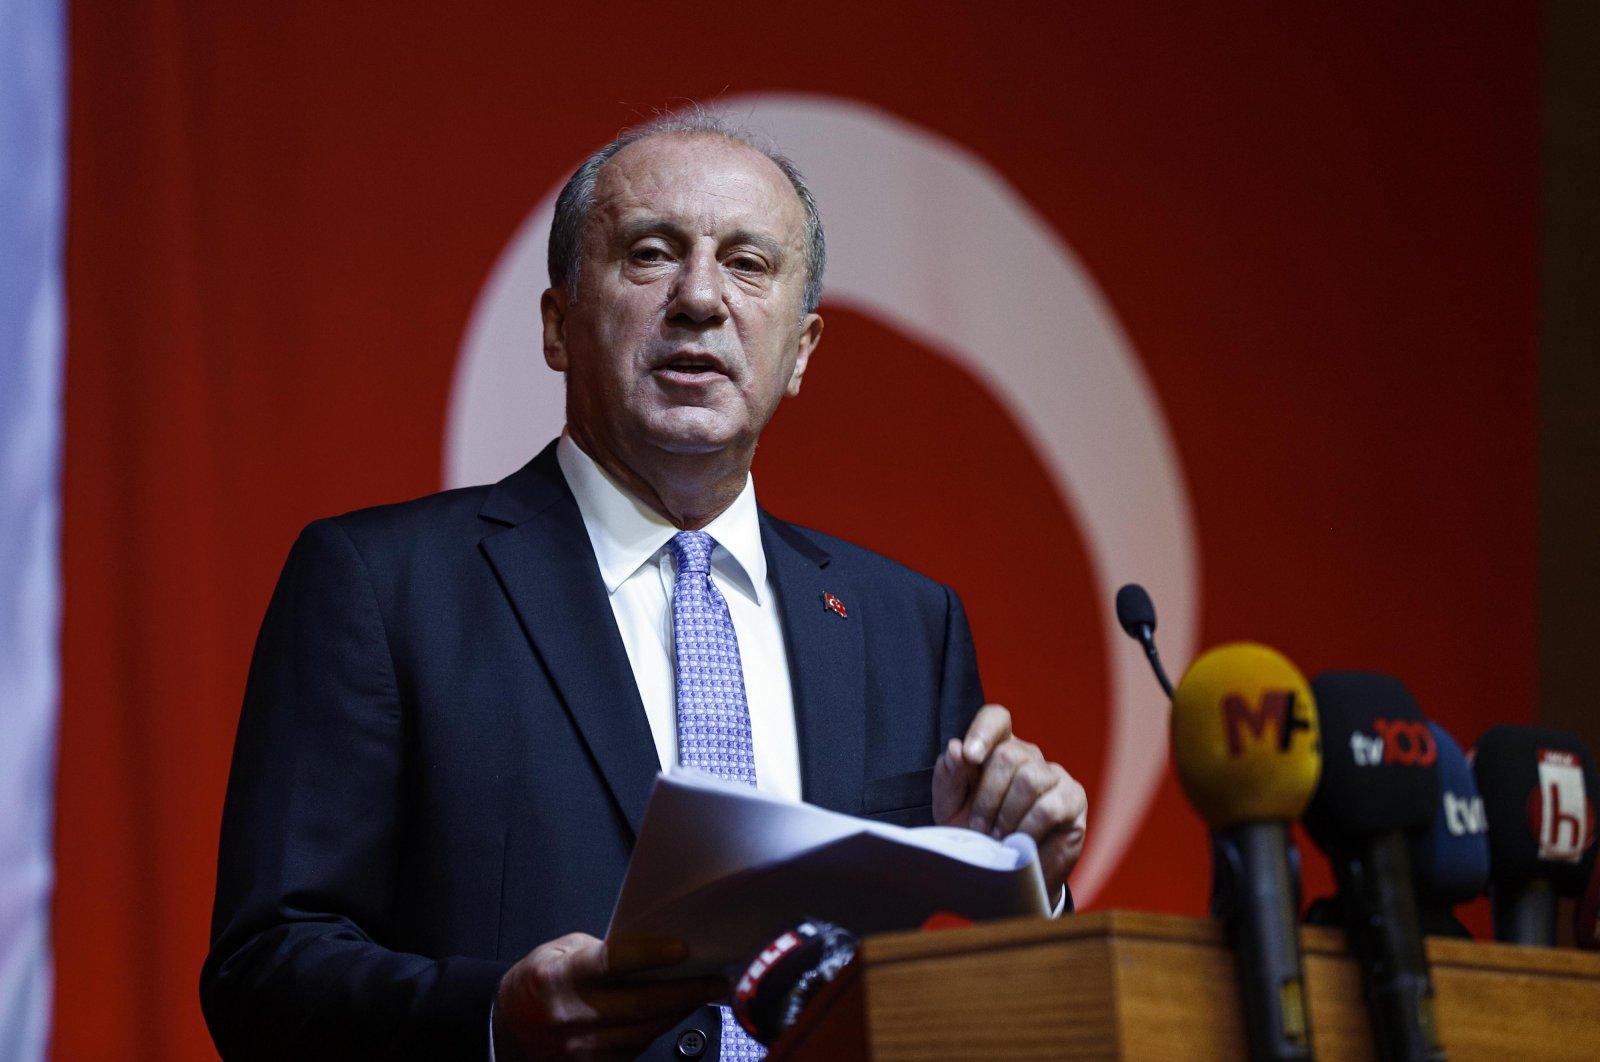 Muharrem İnce announces his new political movement during a press conference in Ankara, Aug.13, 2020. (DHA)